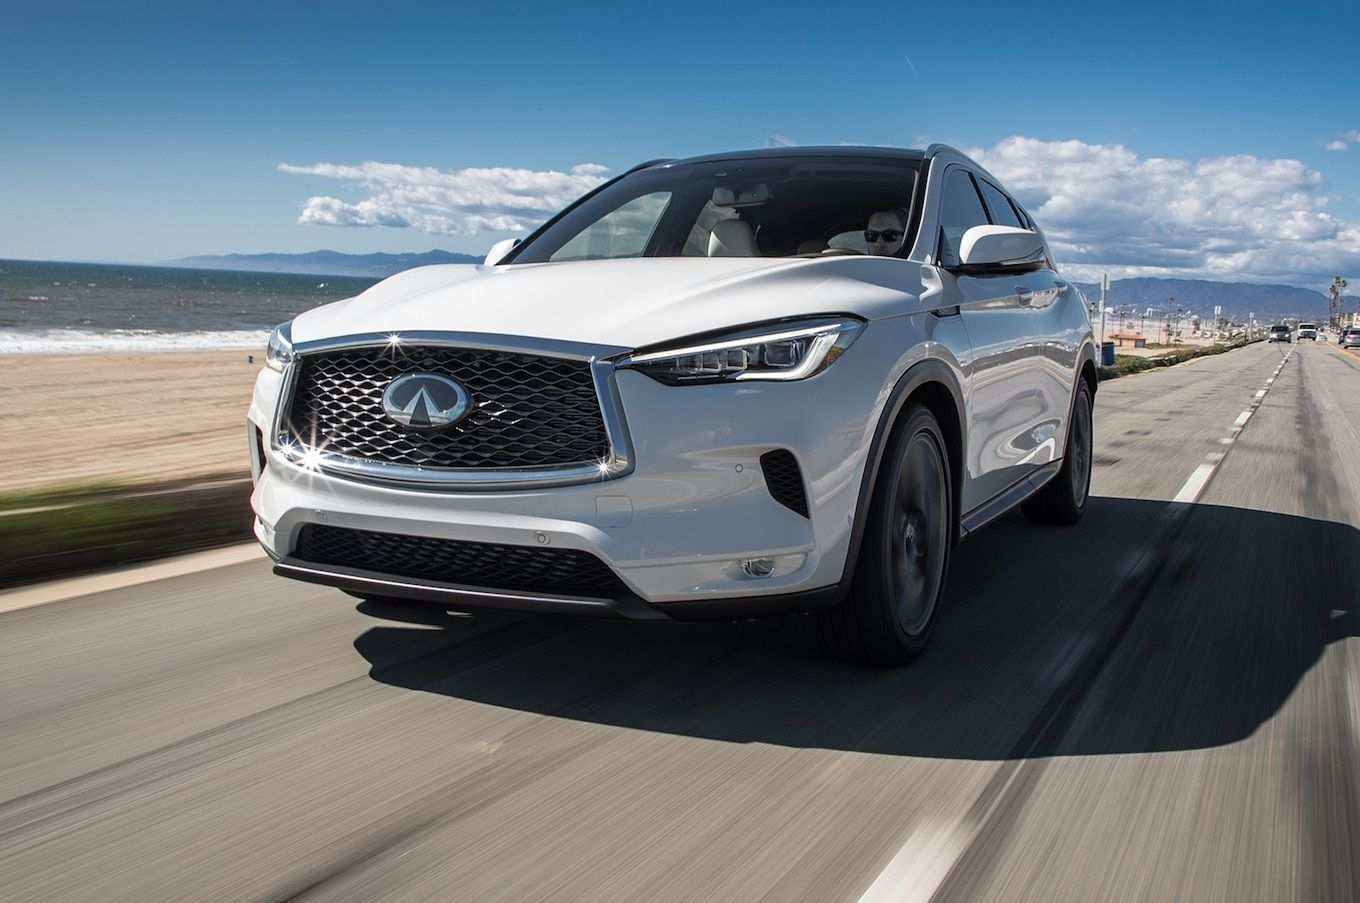 82 All New 2020 Infiniti Qx50 Luxe New Concept New Review by 2020 Infiniti Qx50 Luxe New Concept